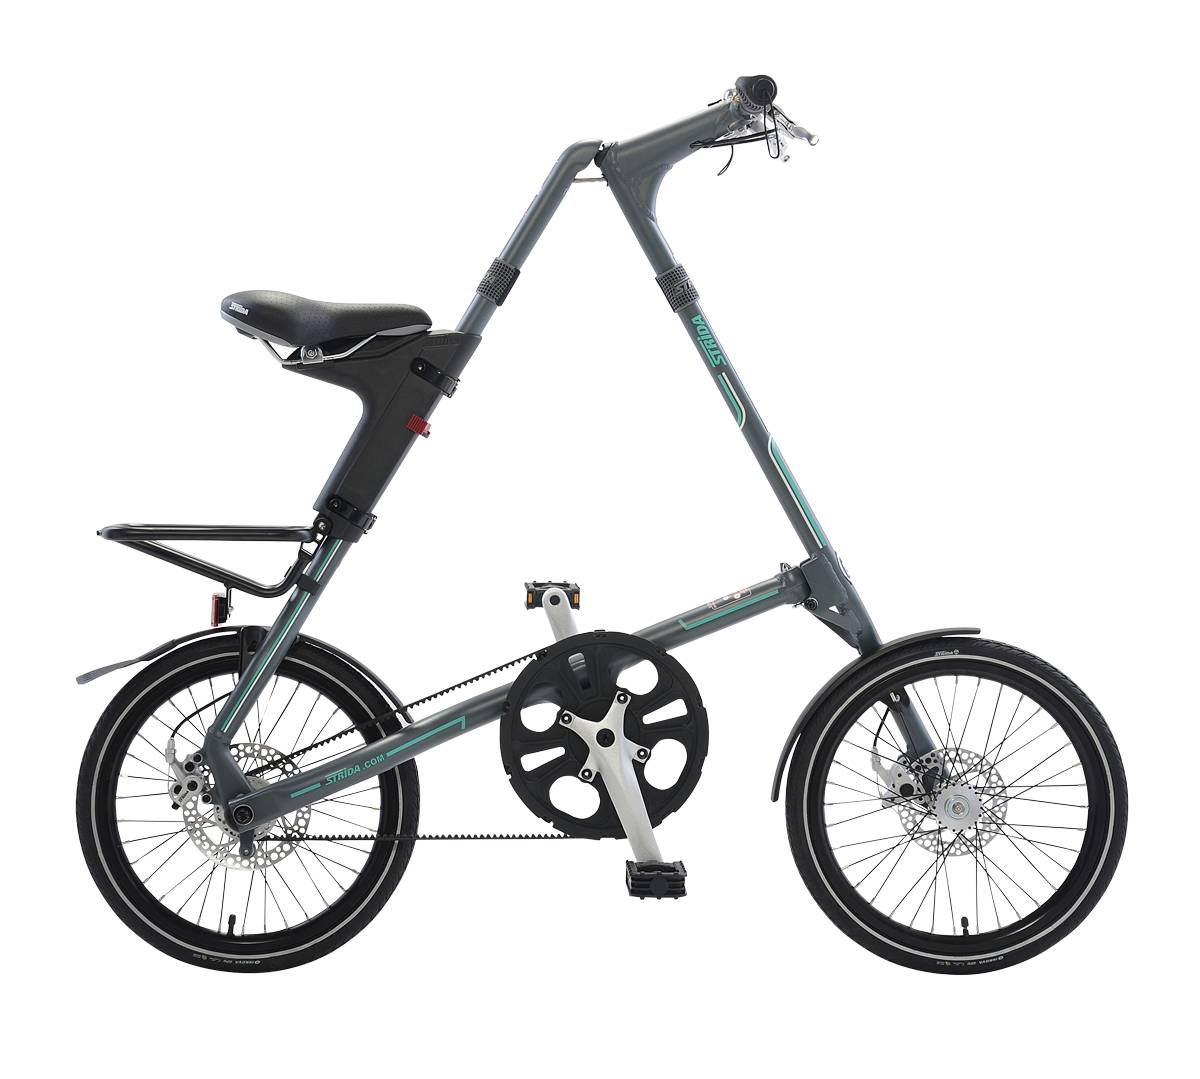 STRiDA SX Folding Bicycle, Grey